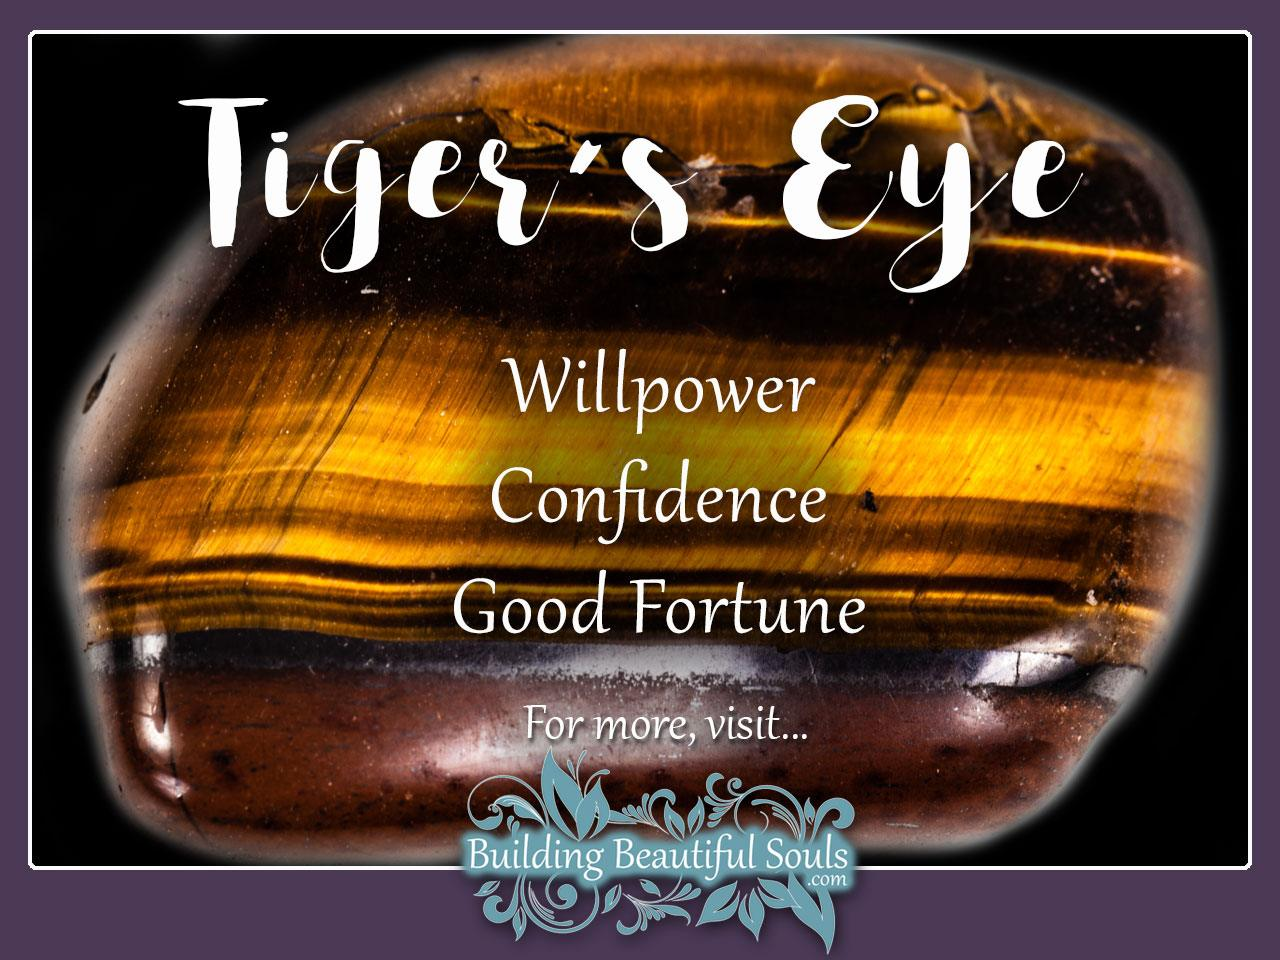 Tigers Eye Meaning Properties Healing Crystals Stones